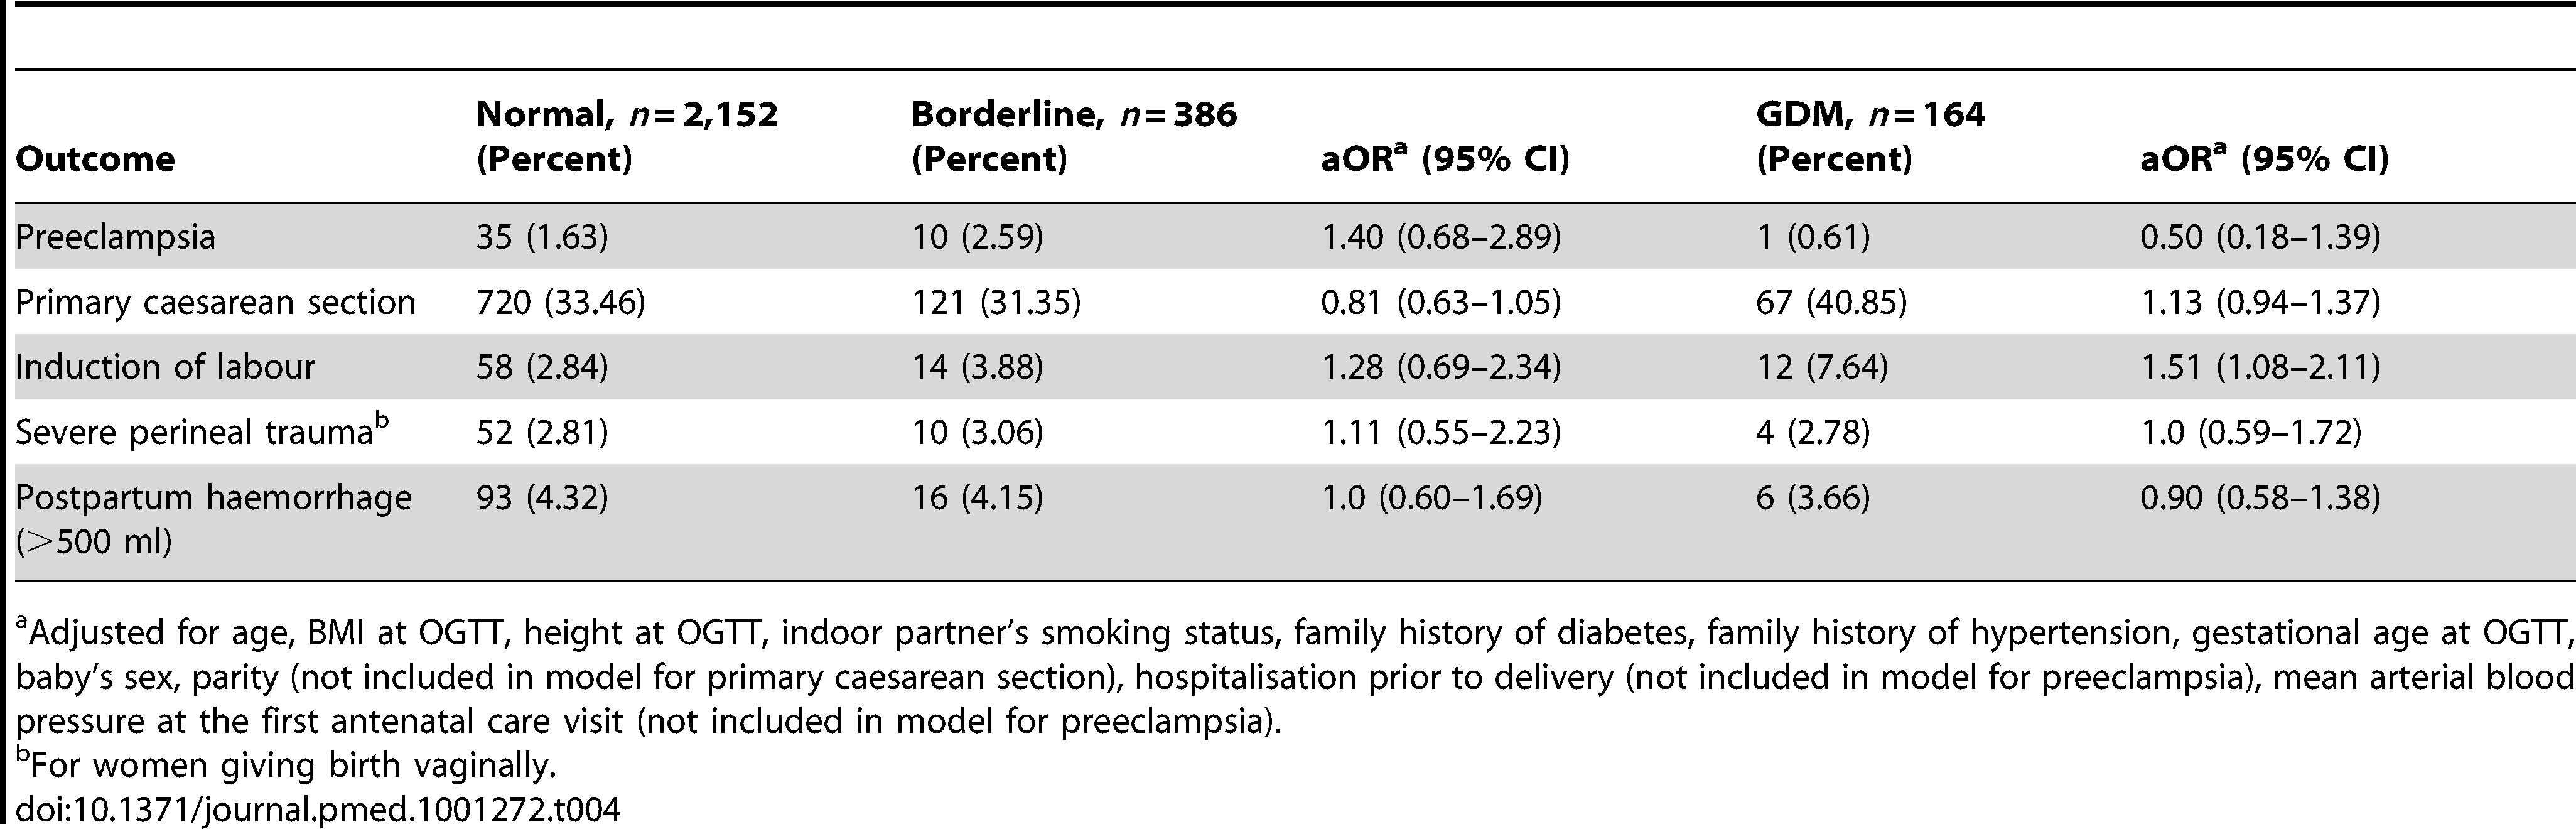 Maternal outcomes comparing normal (referent) group to borderline and GDM groups.